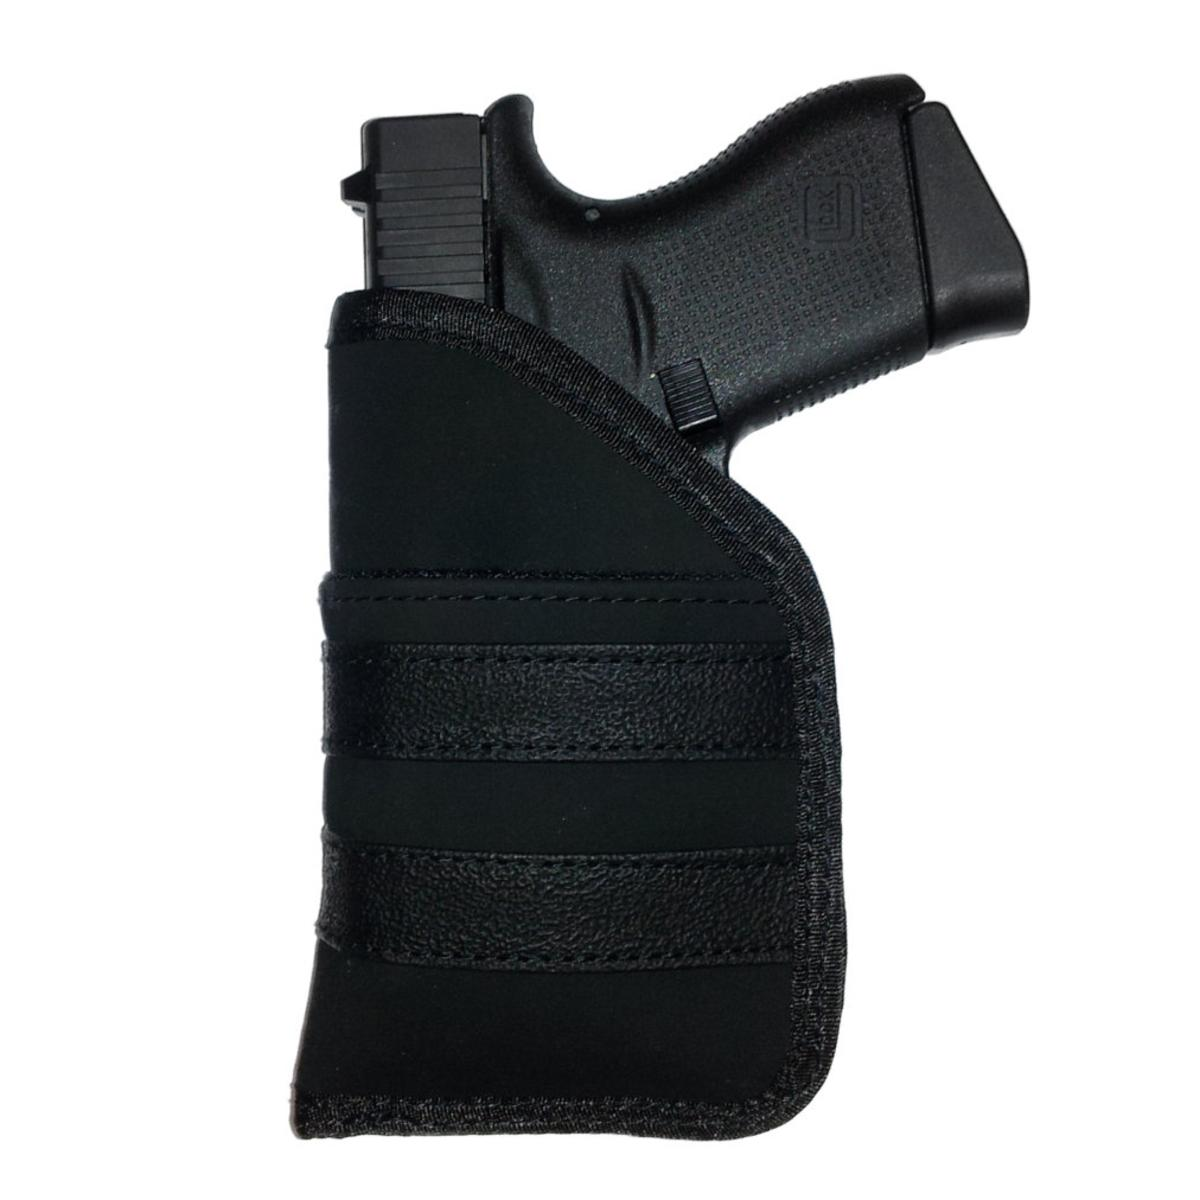 """UTG 3.6"""" Open Top Quick Draw Ambidextrous Pocket Holster, Black"""